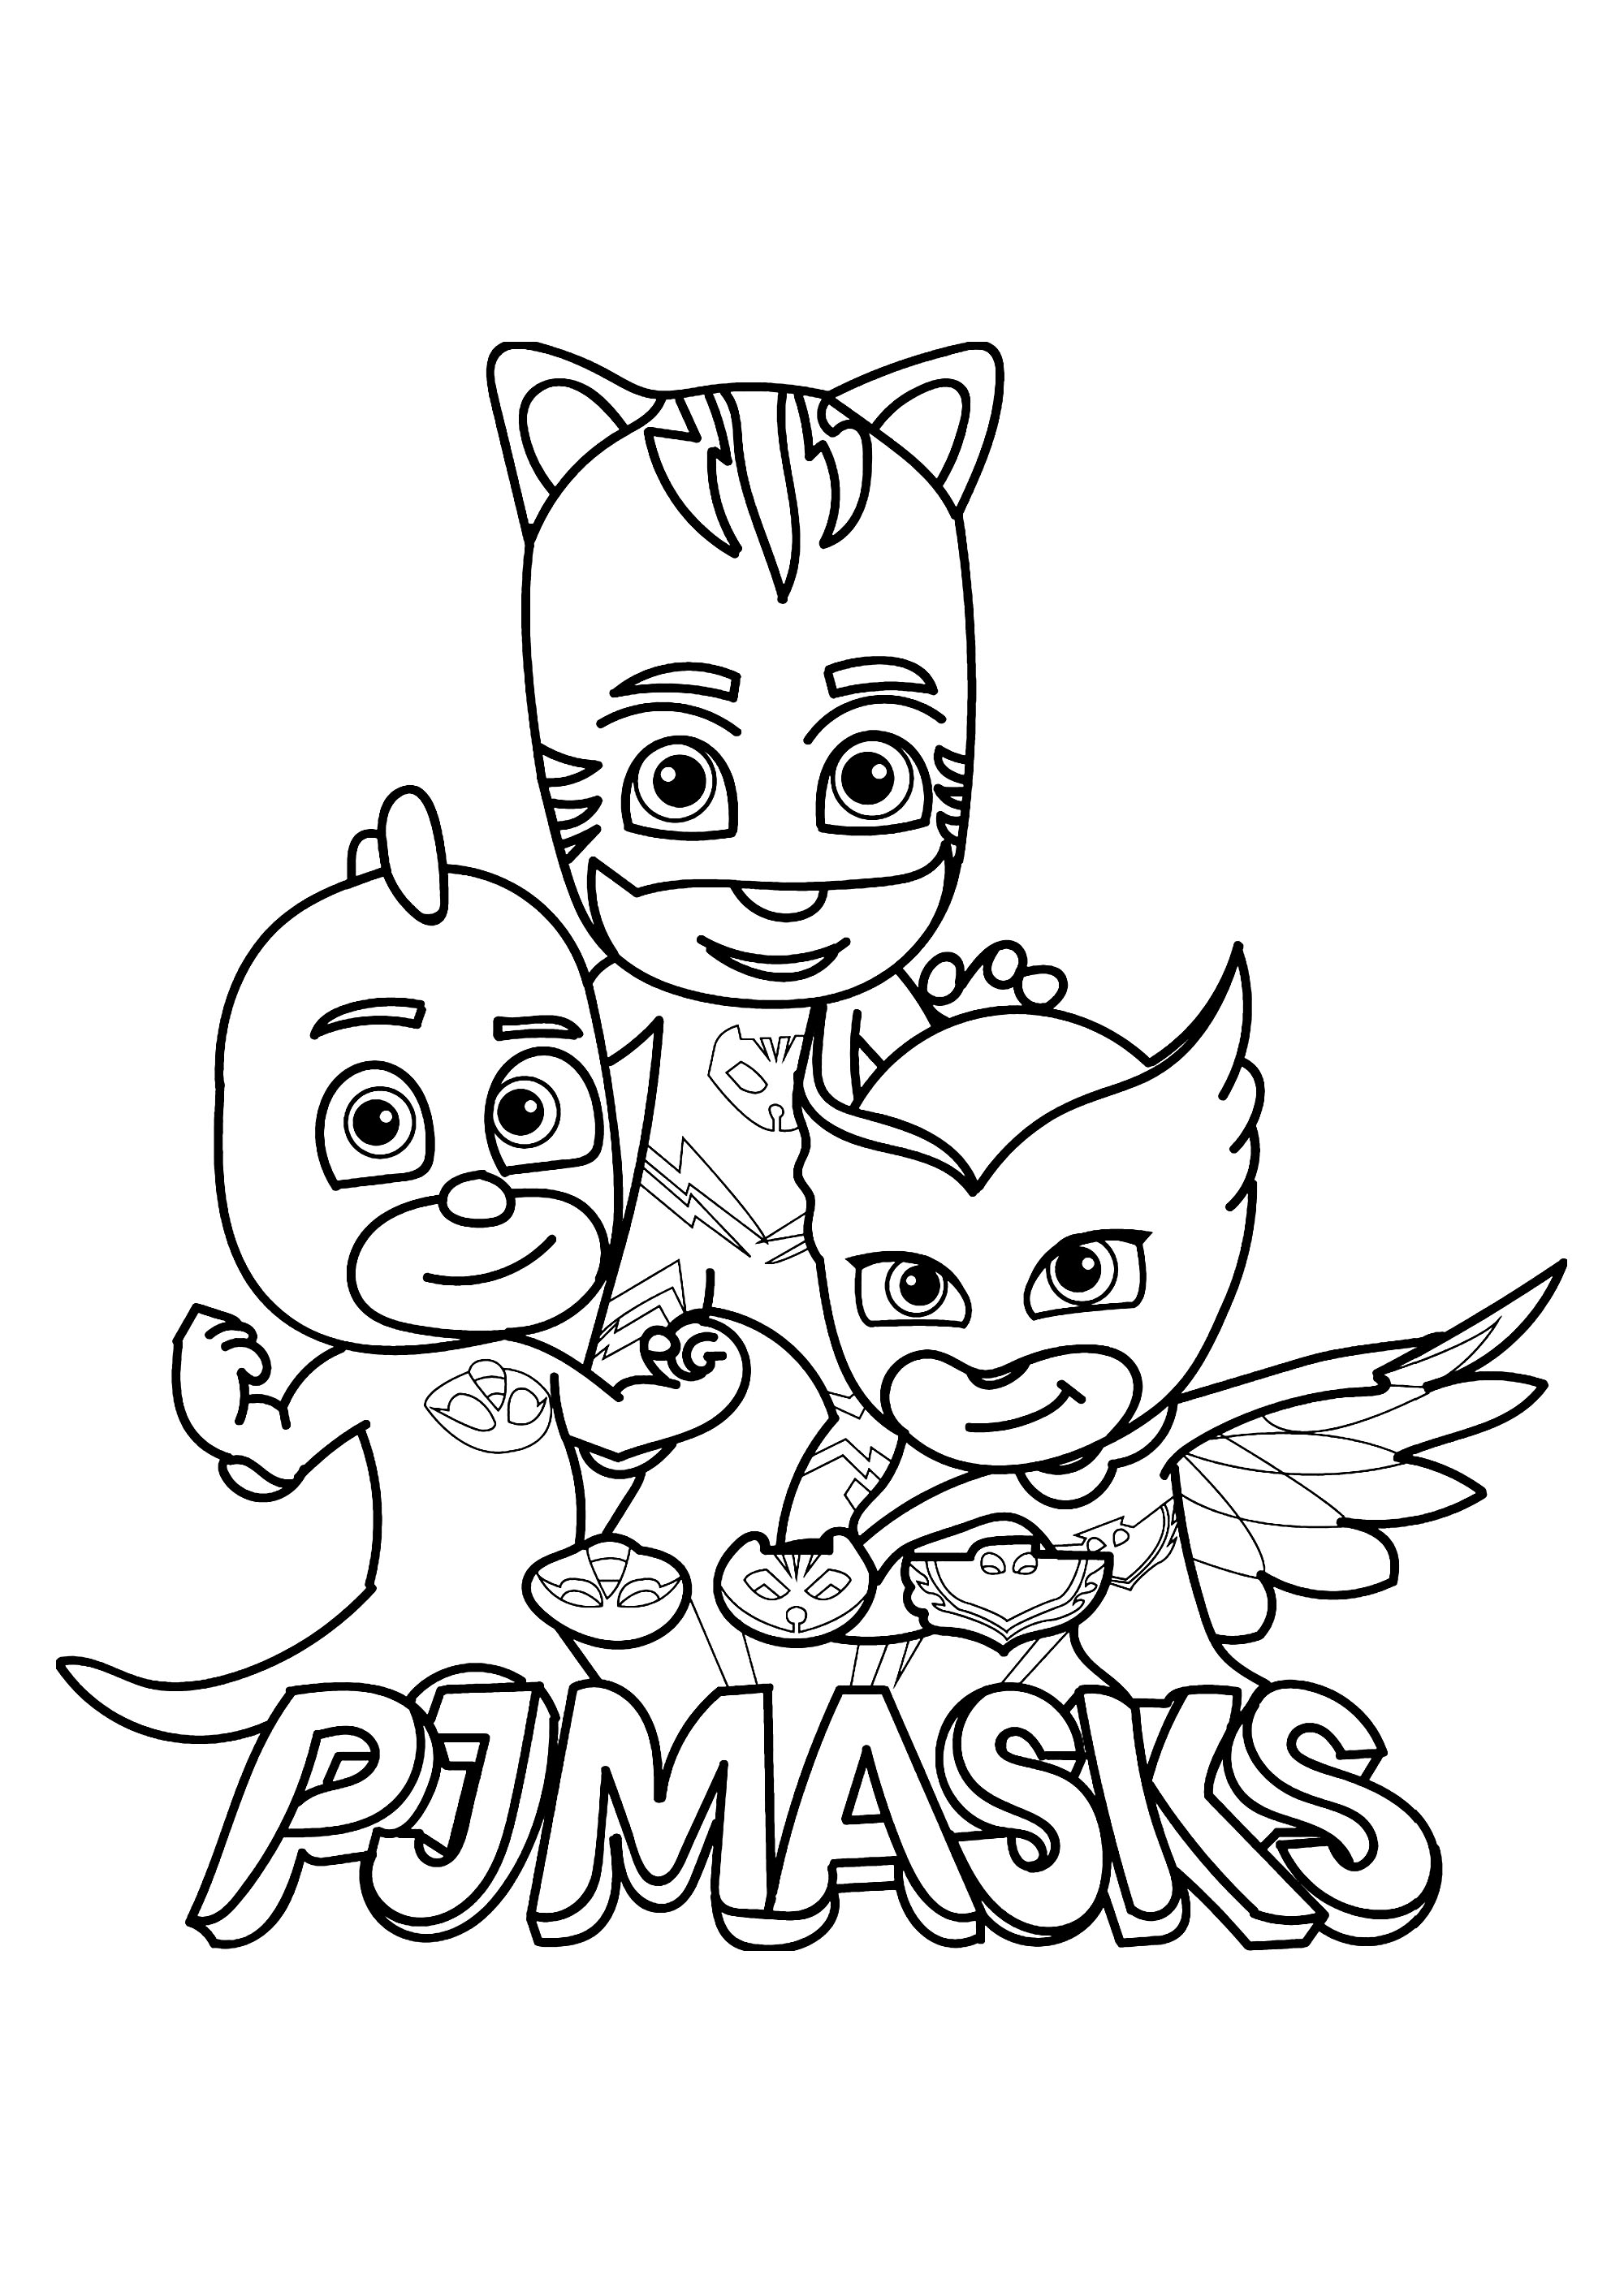 pictures of kids coloring pages to colour for kids printable coloring pages kids pictures coloring of